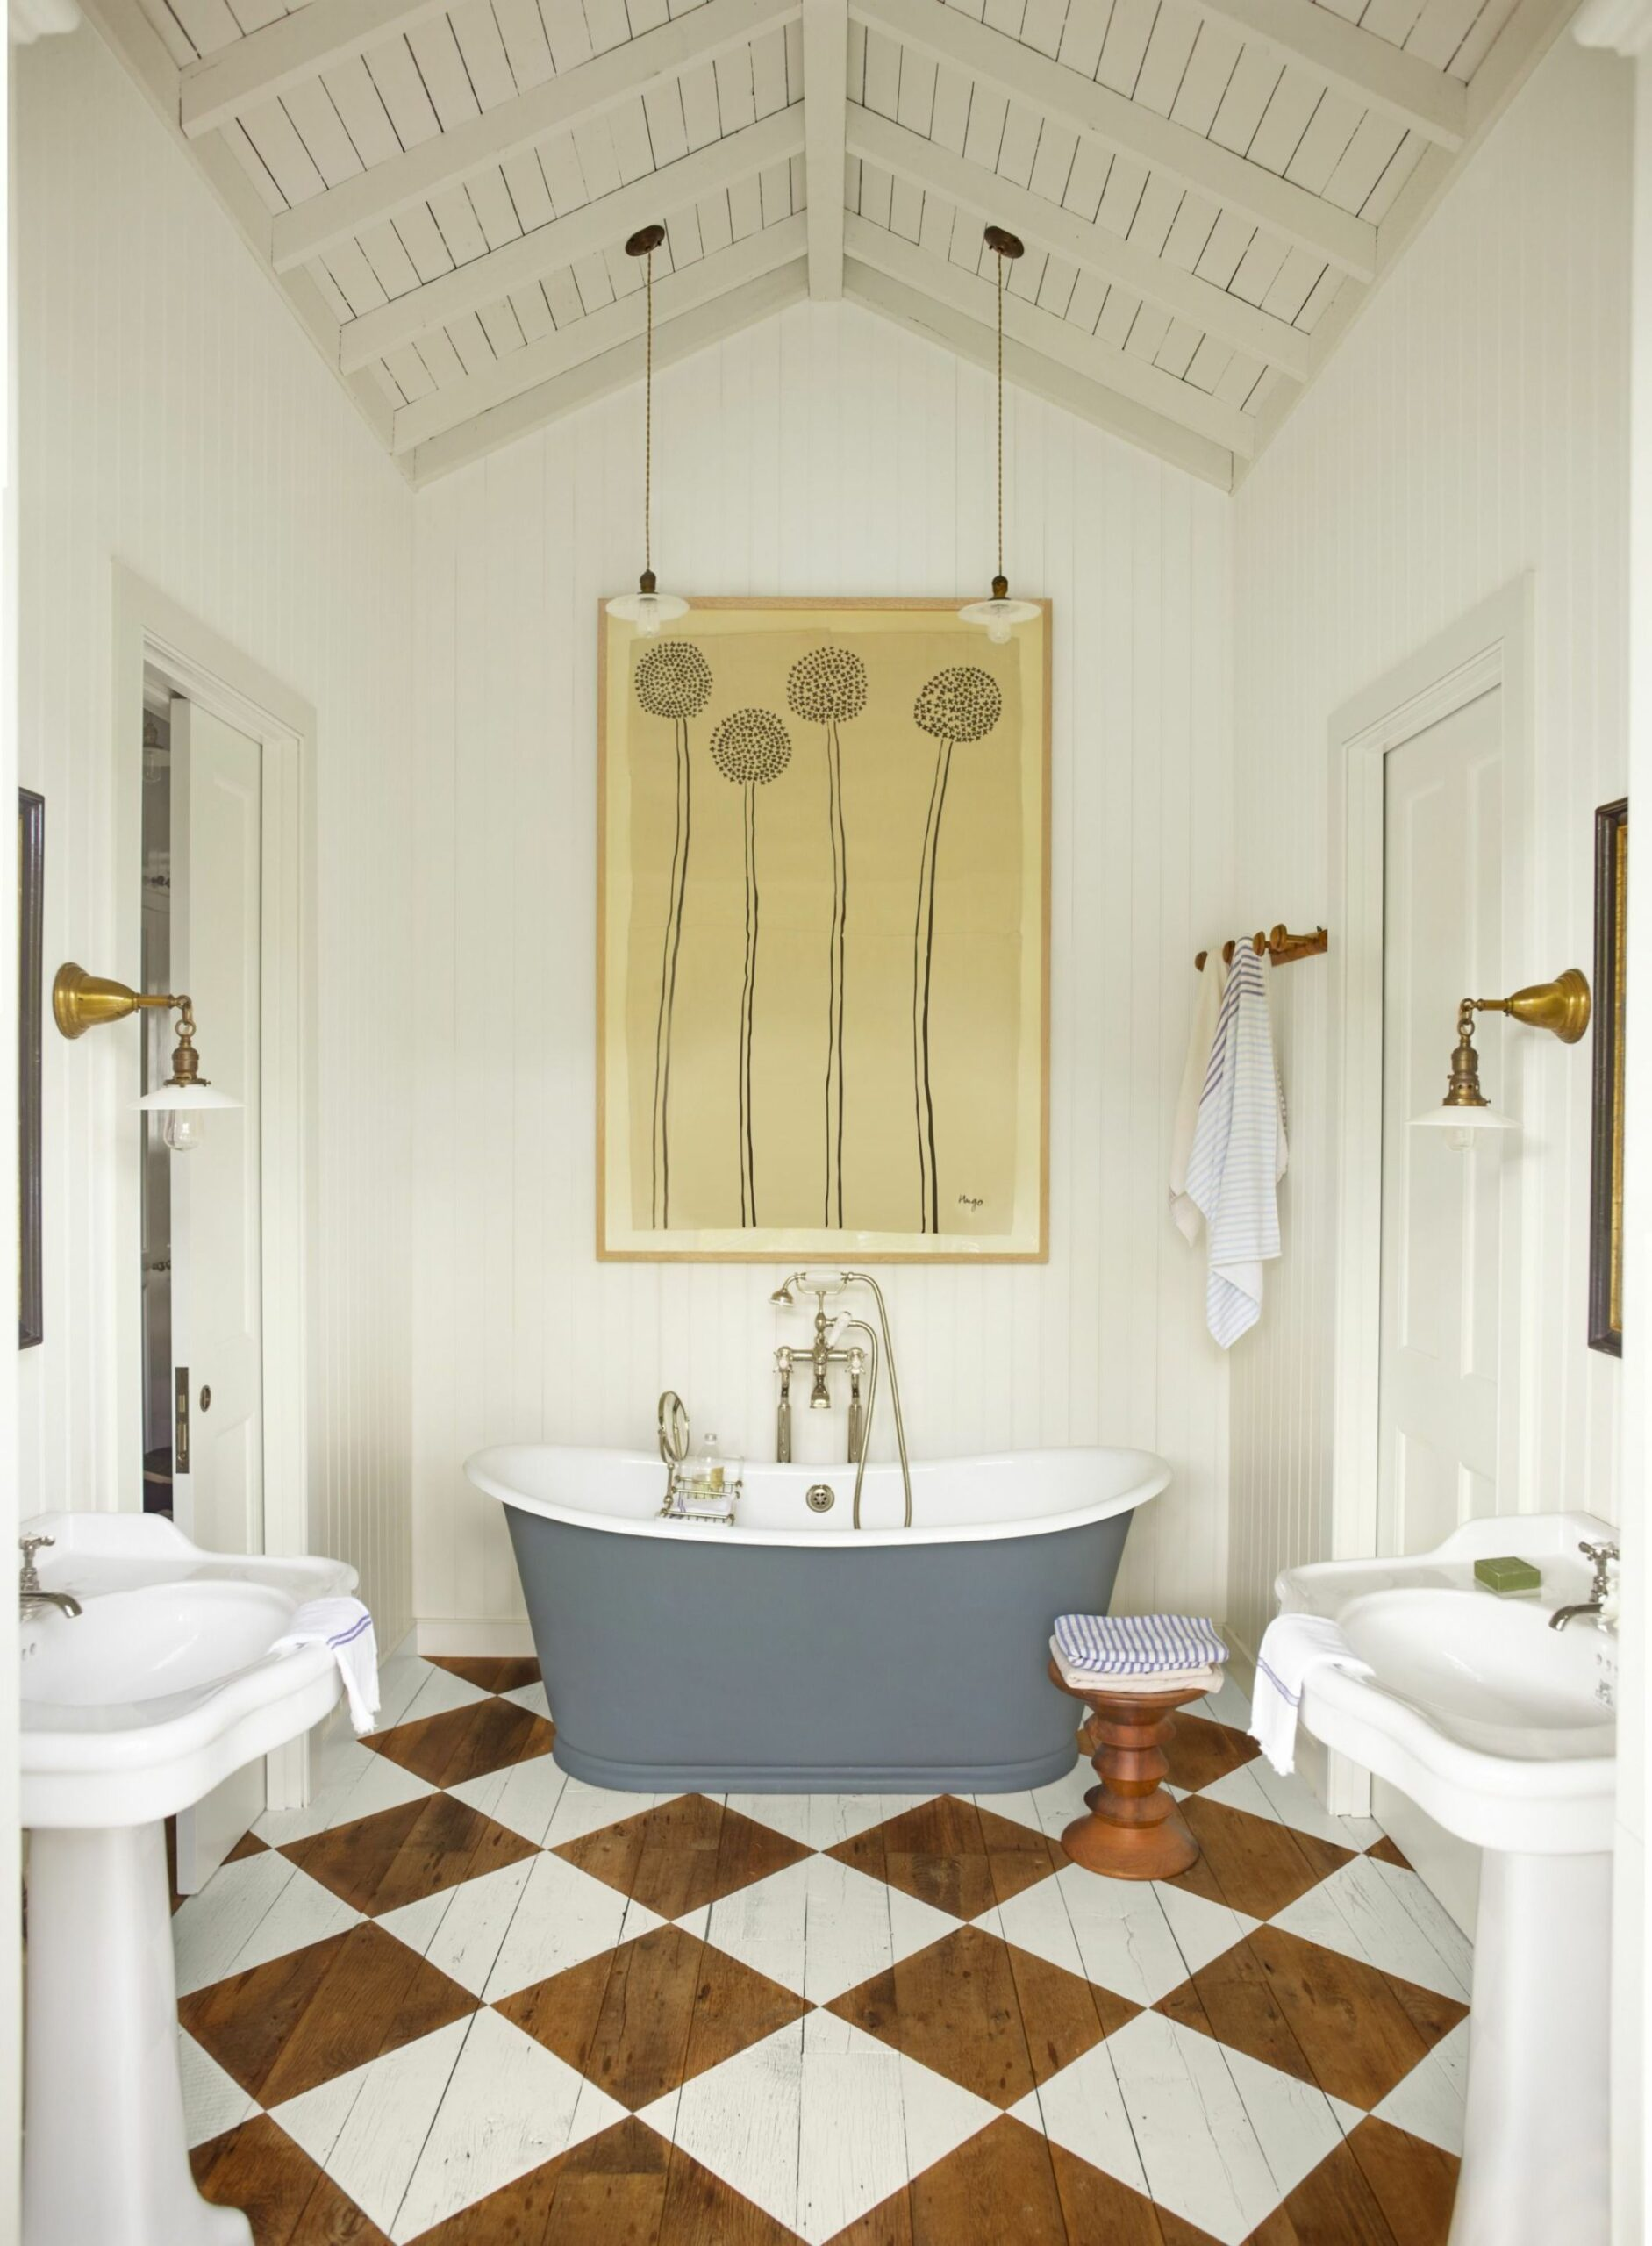 11 Best Bathroom Decorating Ideas - Decor & Design Inspiration ...